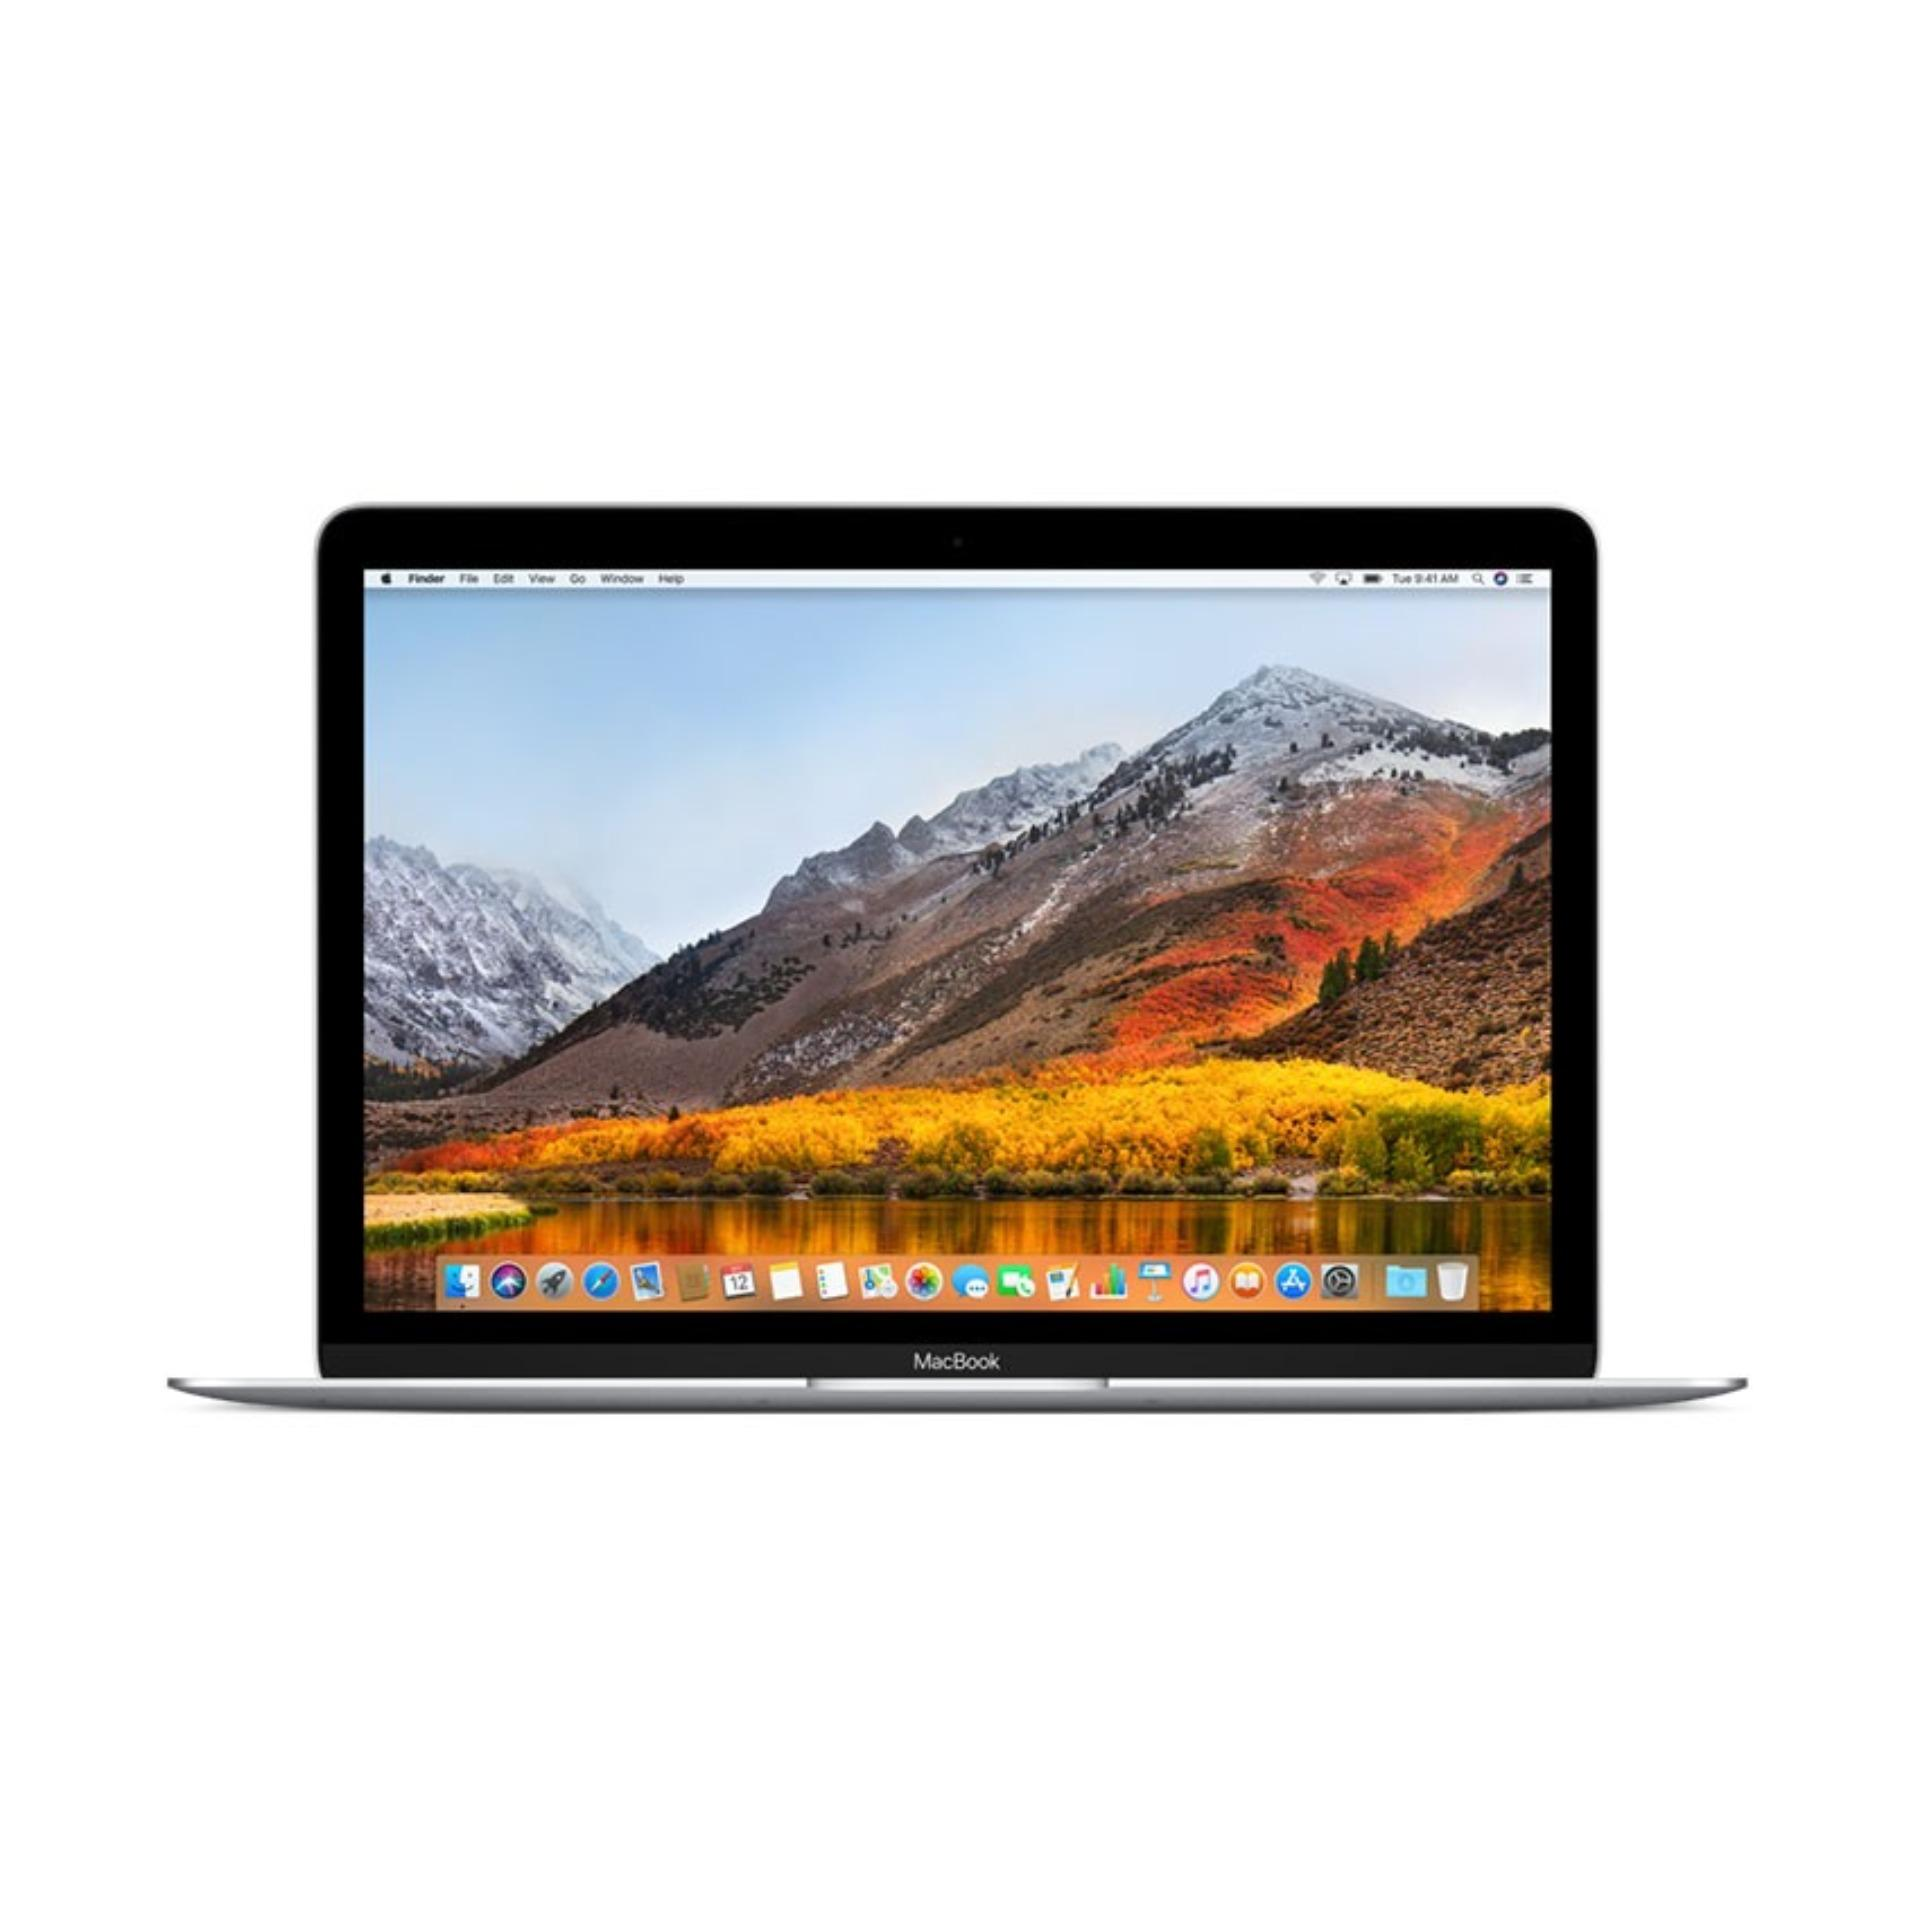 Hình ảnh Apple MacBook 12-inch 1.2GHz dual-core Intel Core m3 256GB Silver